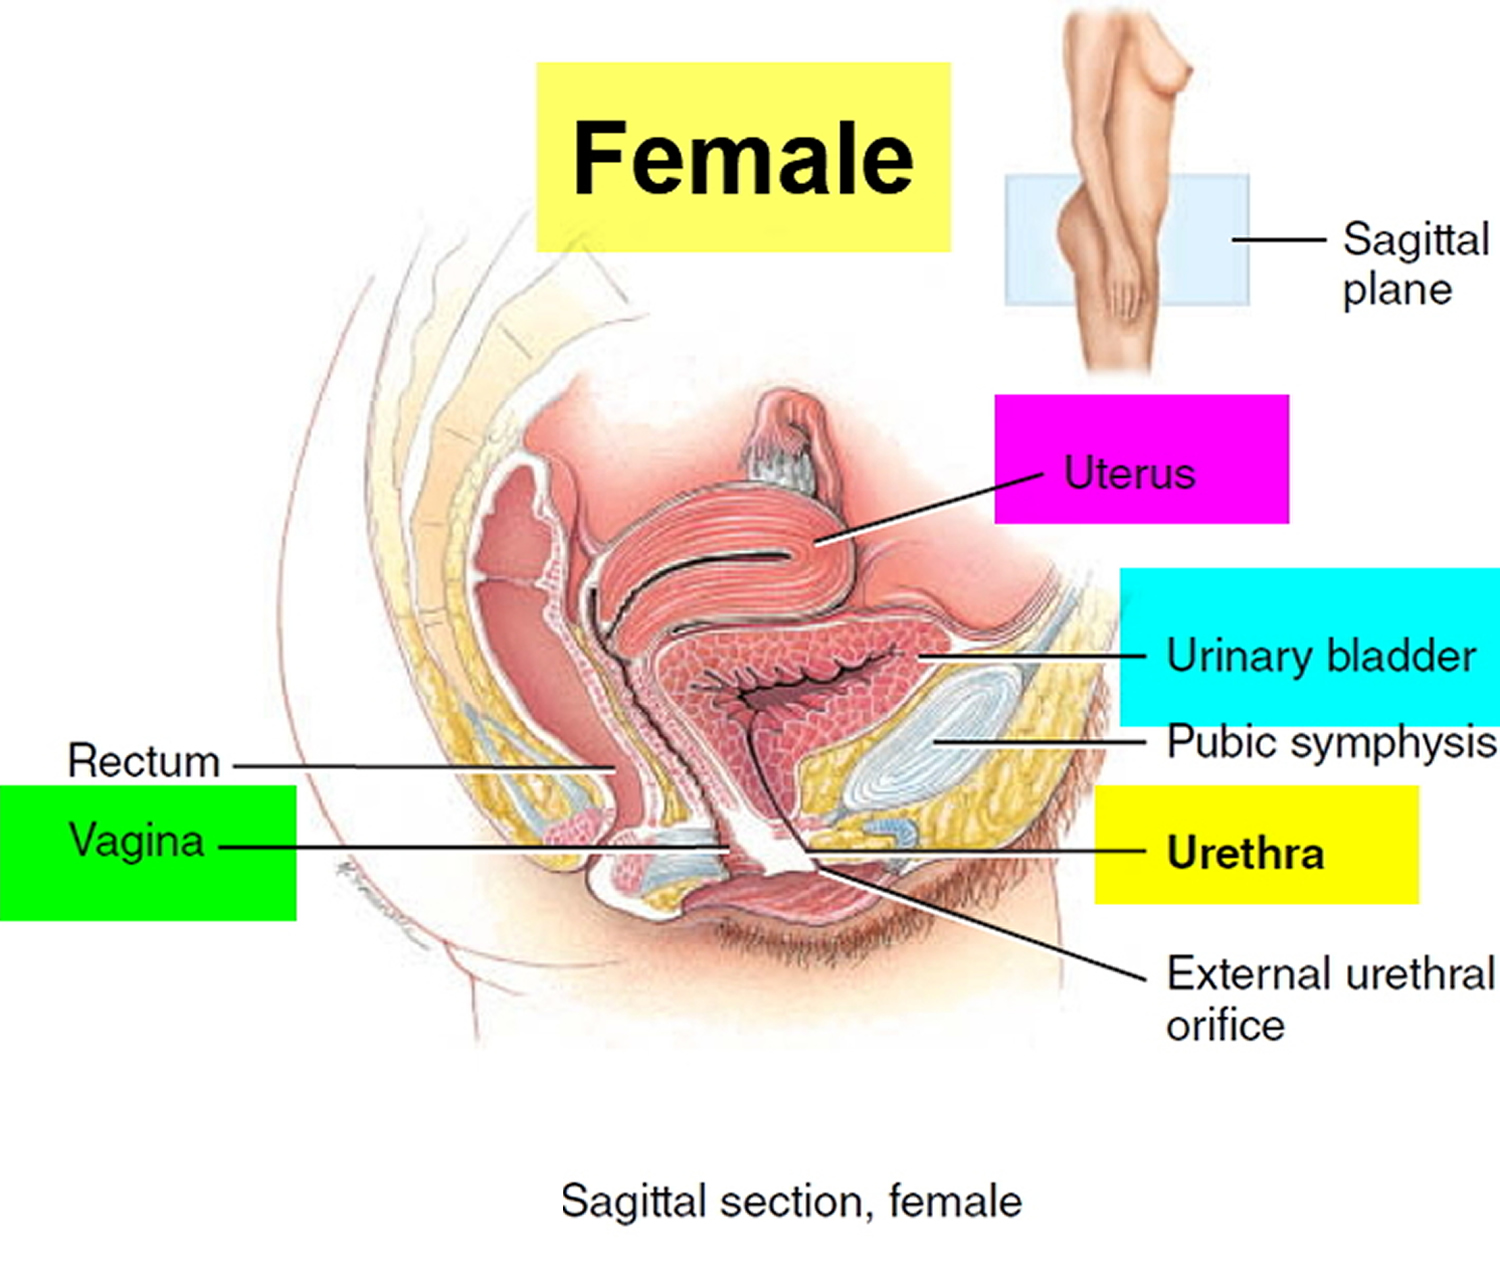 urinary-bladder-location